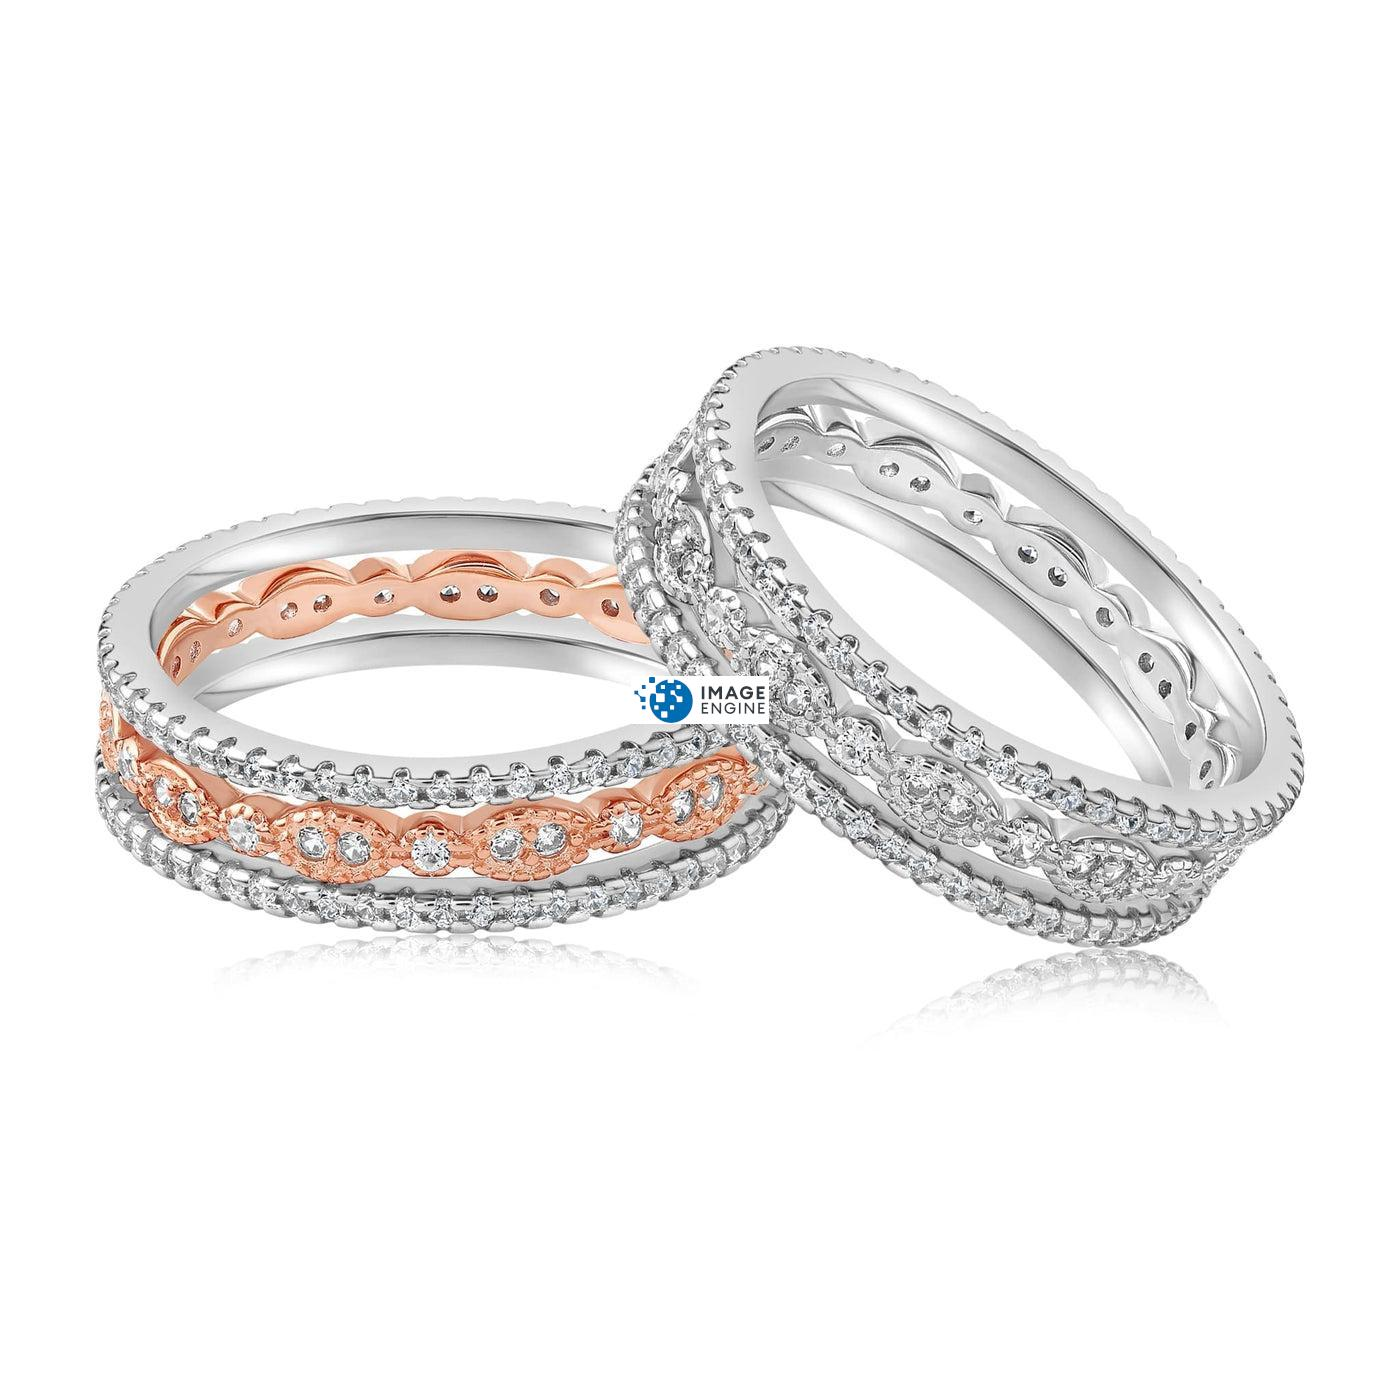 Juliana 3 Ring Set - Front View Side by Side - 18K Rose Gold Vermeil and 925 Sterling Silver